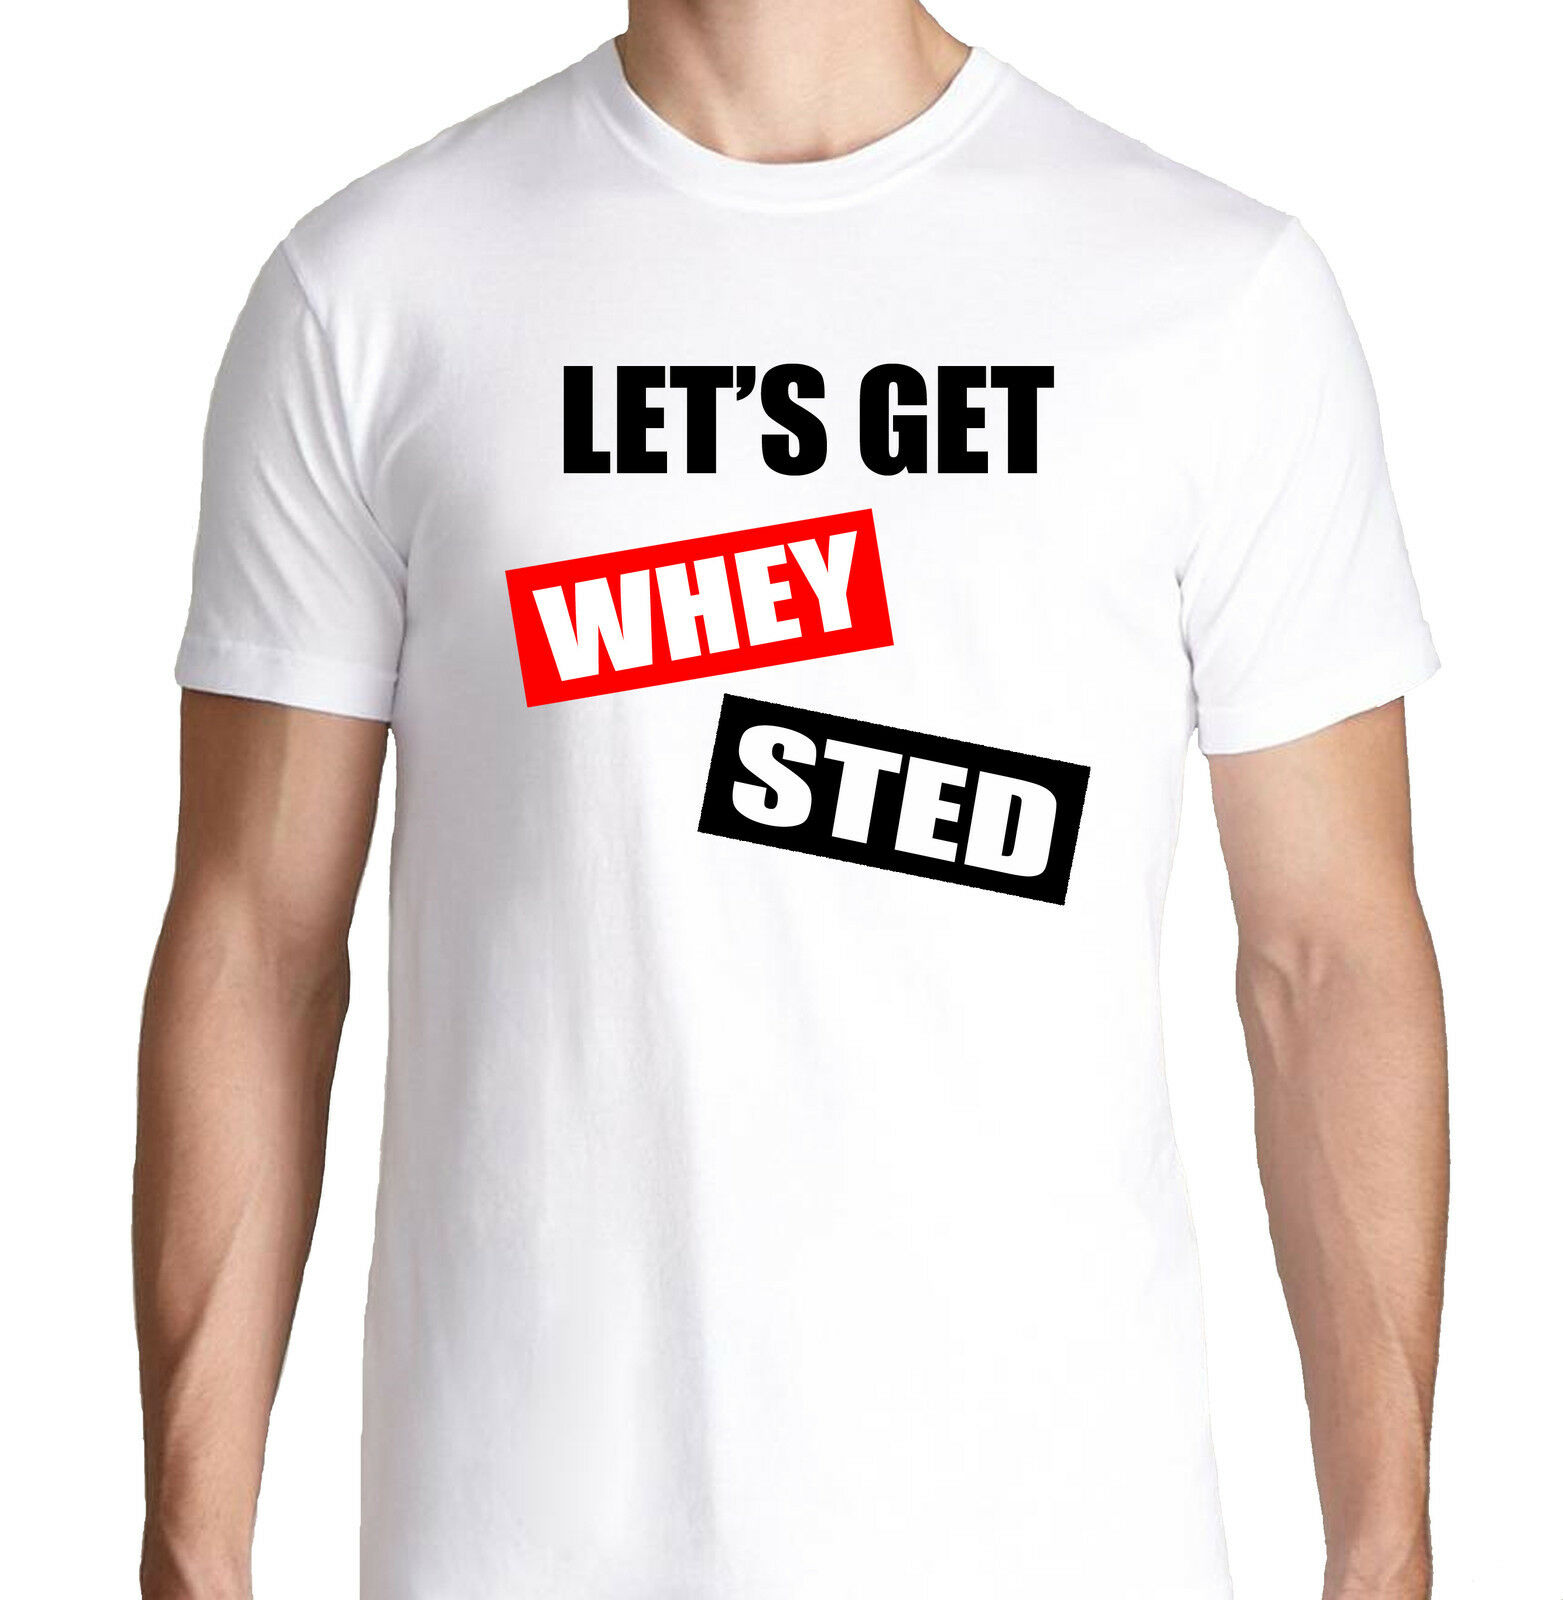 LET'S GET WHEY STED PROTEIN FUNNY Harajuku streetwear shirt men HEALTH RUNNING WORKOUT TRAIN T SHIRT image